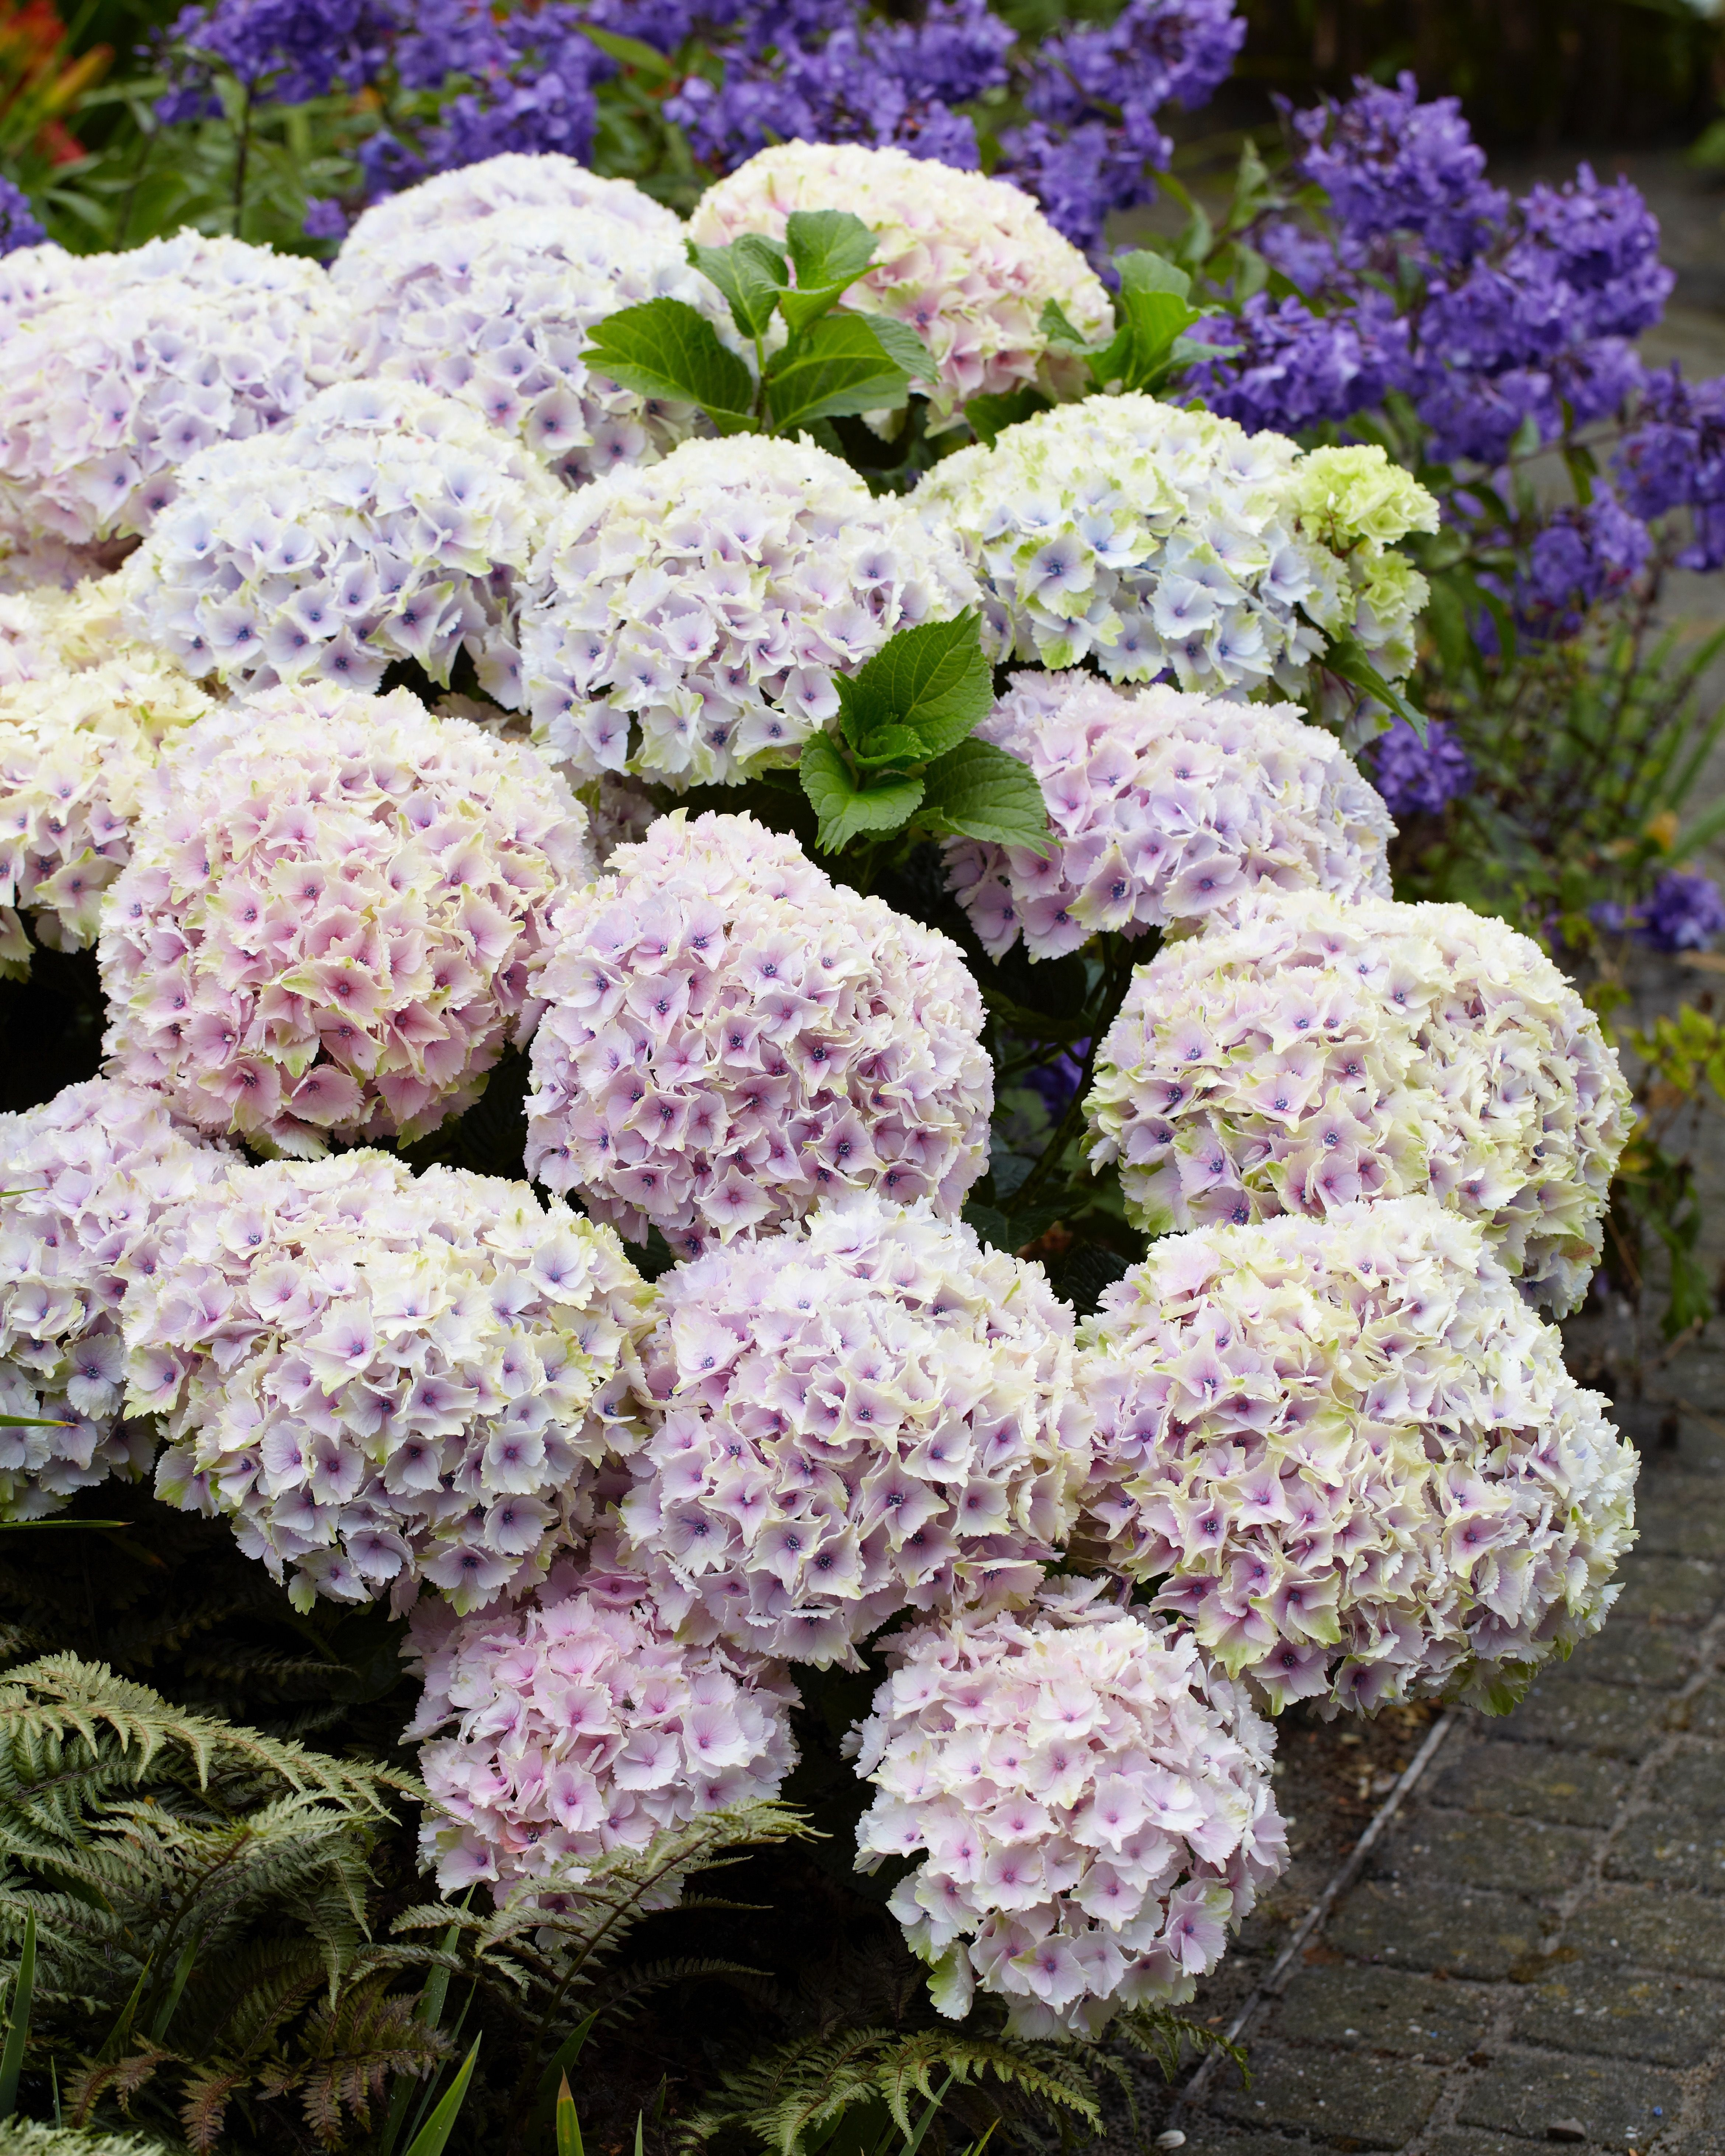 Hydrangea Everlasting Ocean Has Fully Double Round Blooms In The Sweetest Color Blooms Begin Soft P Hardy Hydrangea Hydrangea Not Blooming Panicle Hydrangea